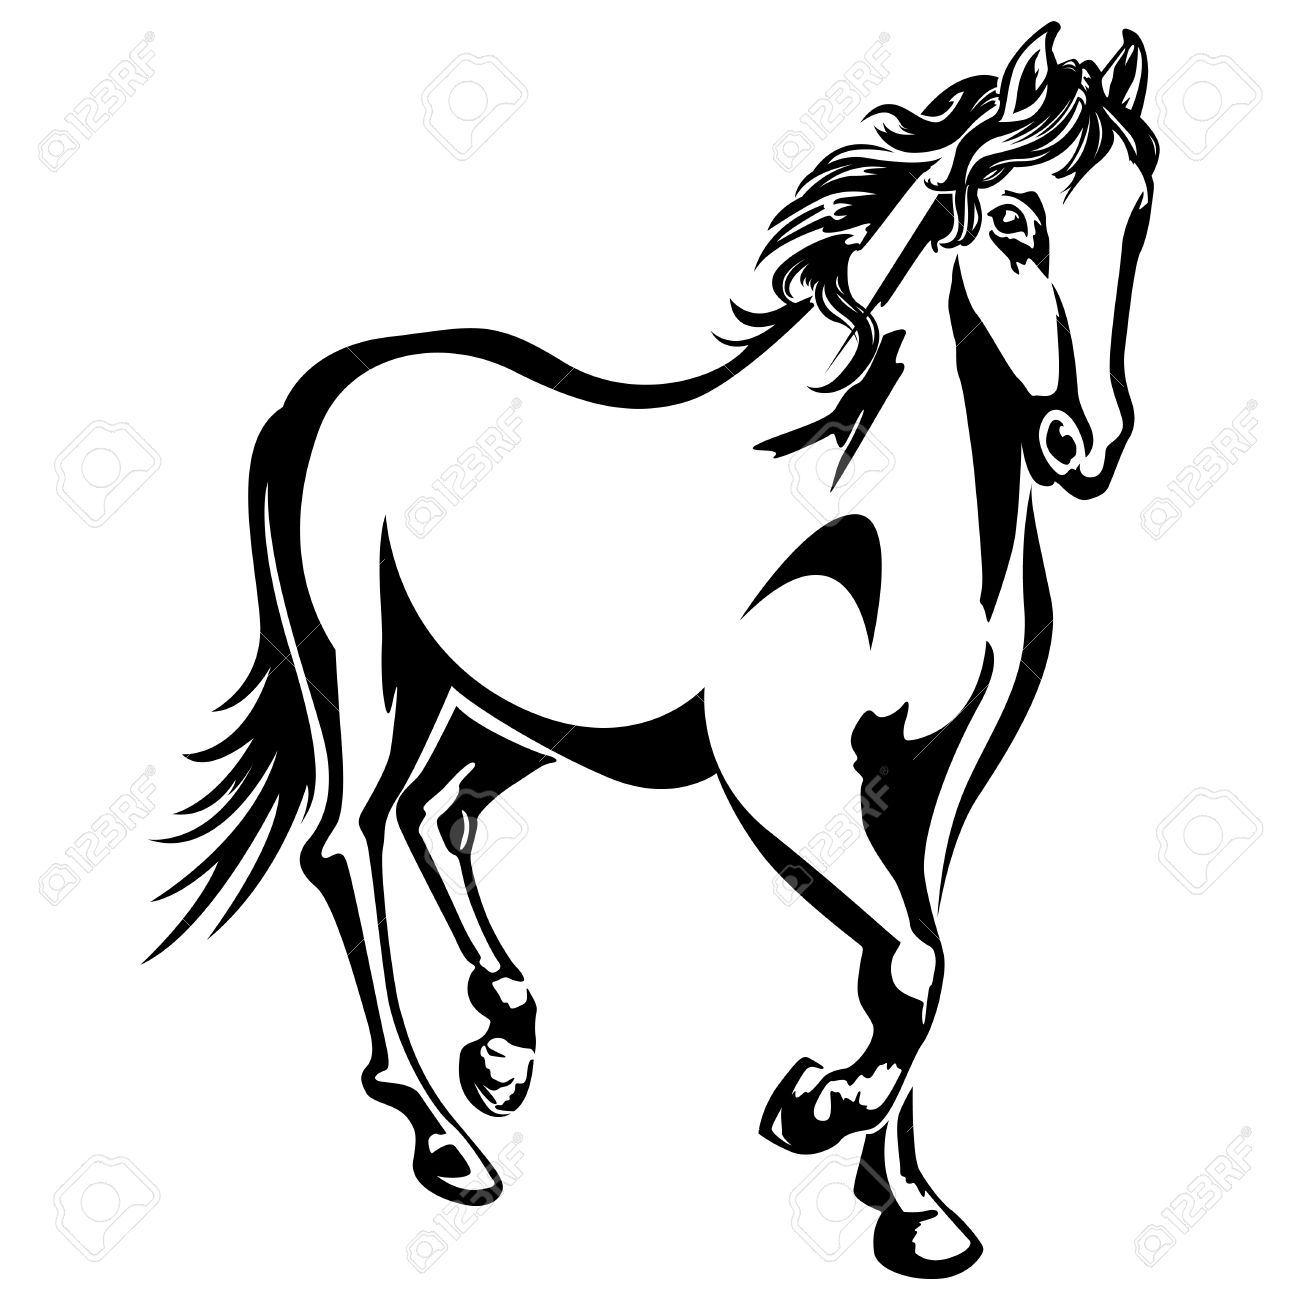 The Horse Is Running Black And White Drawing Silhouette Royalty Free